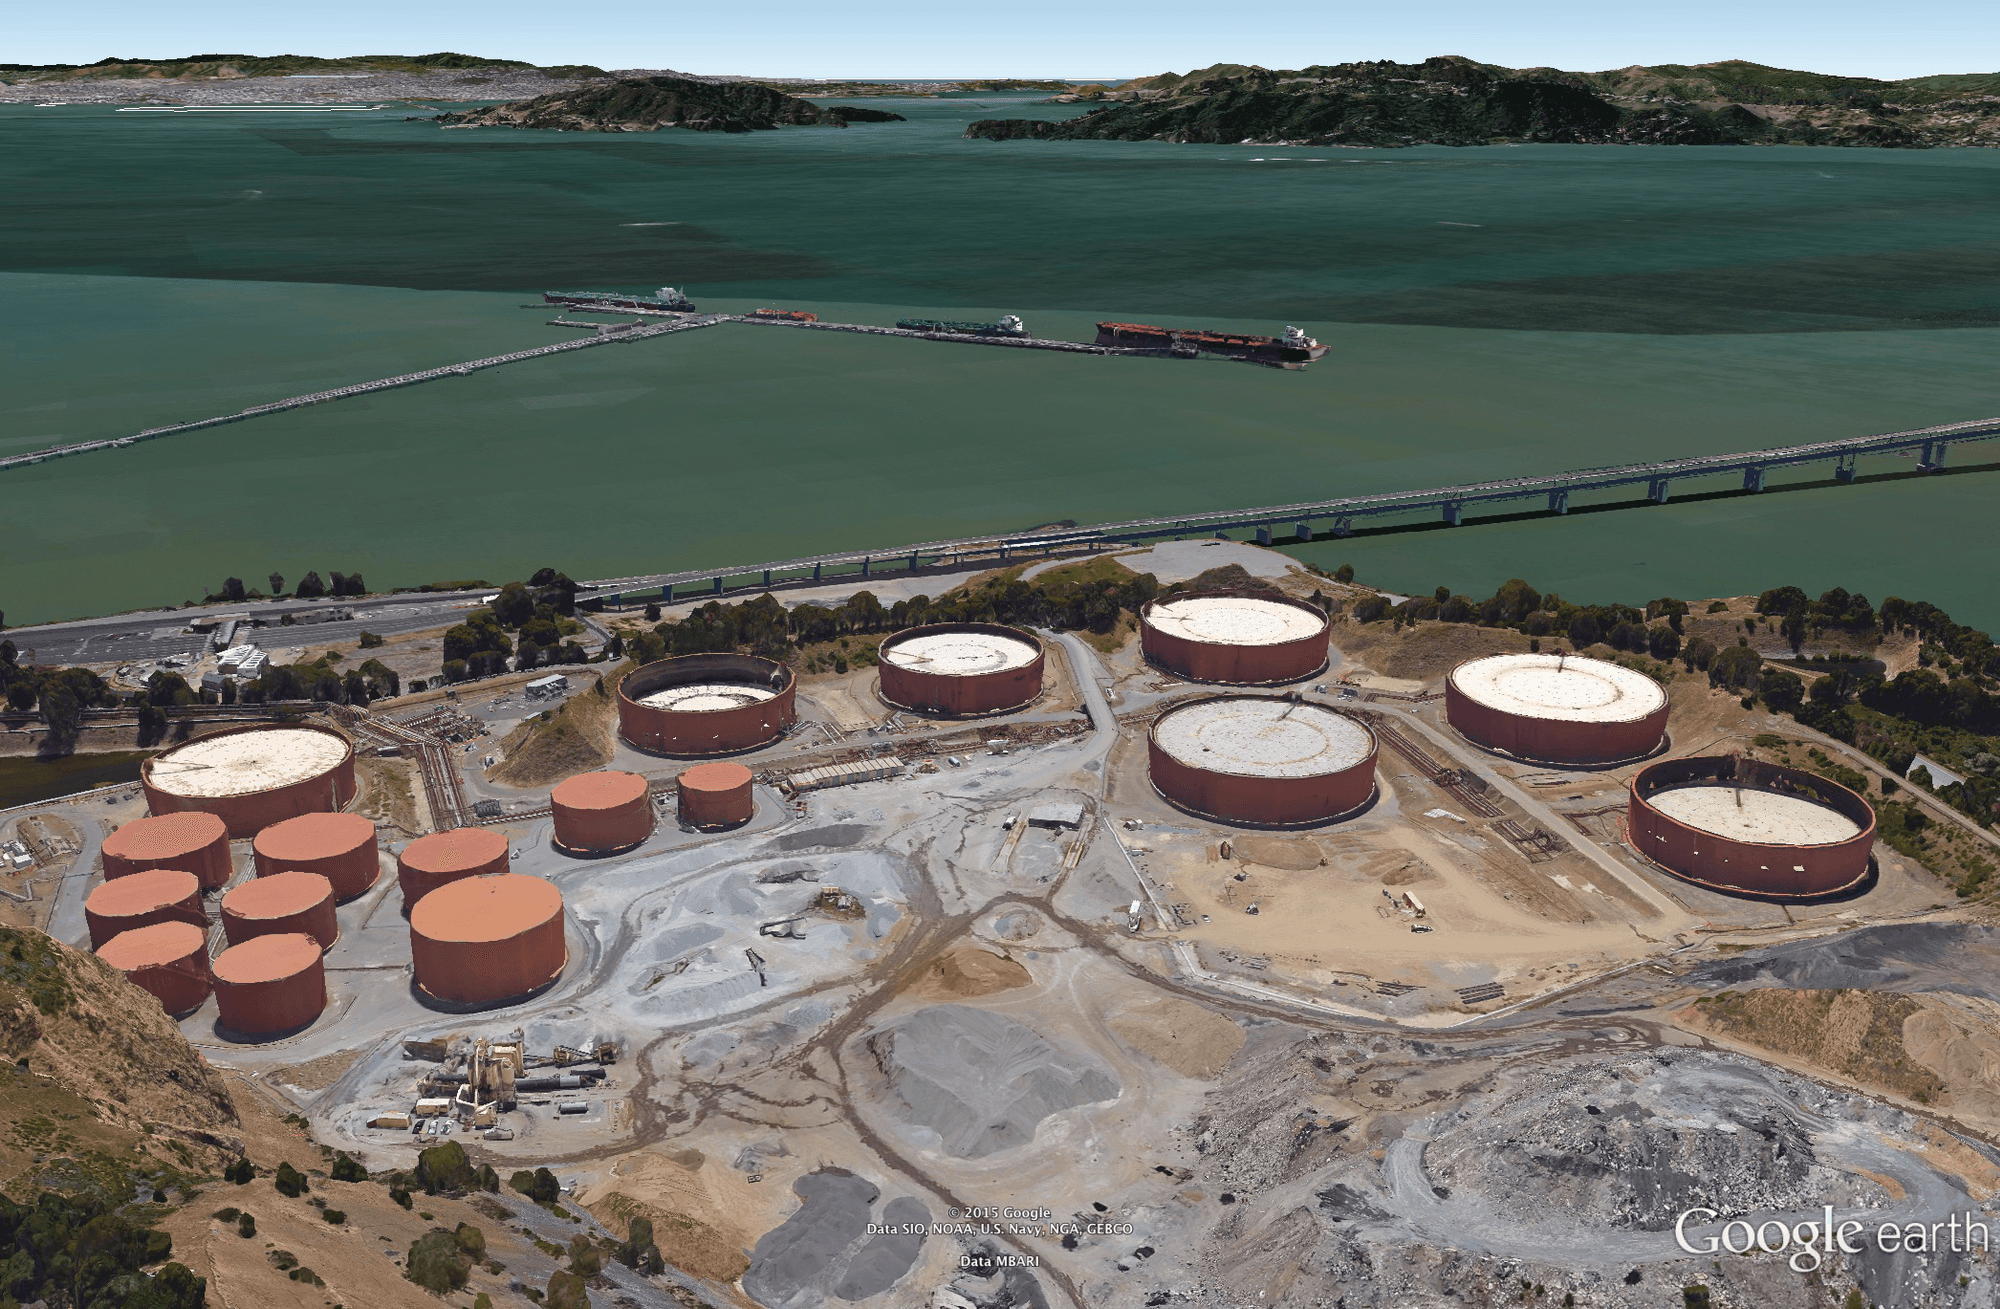 Section of the Chevron Richmond Refinery. These tanks are used to store crude oil offloaded from oil tankers. the tanks on the right are the ersatz 747 hangars.